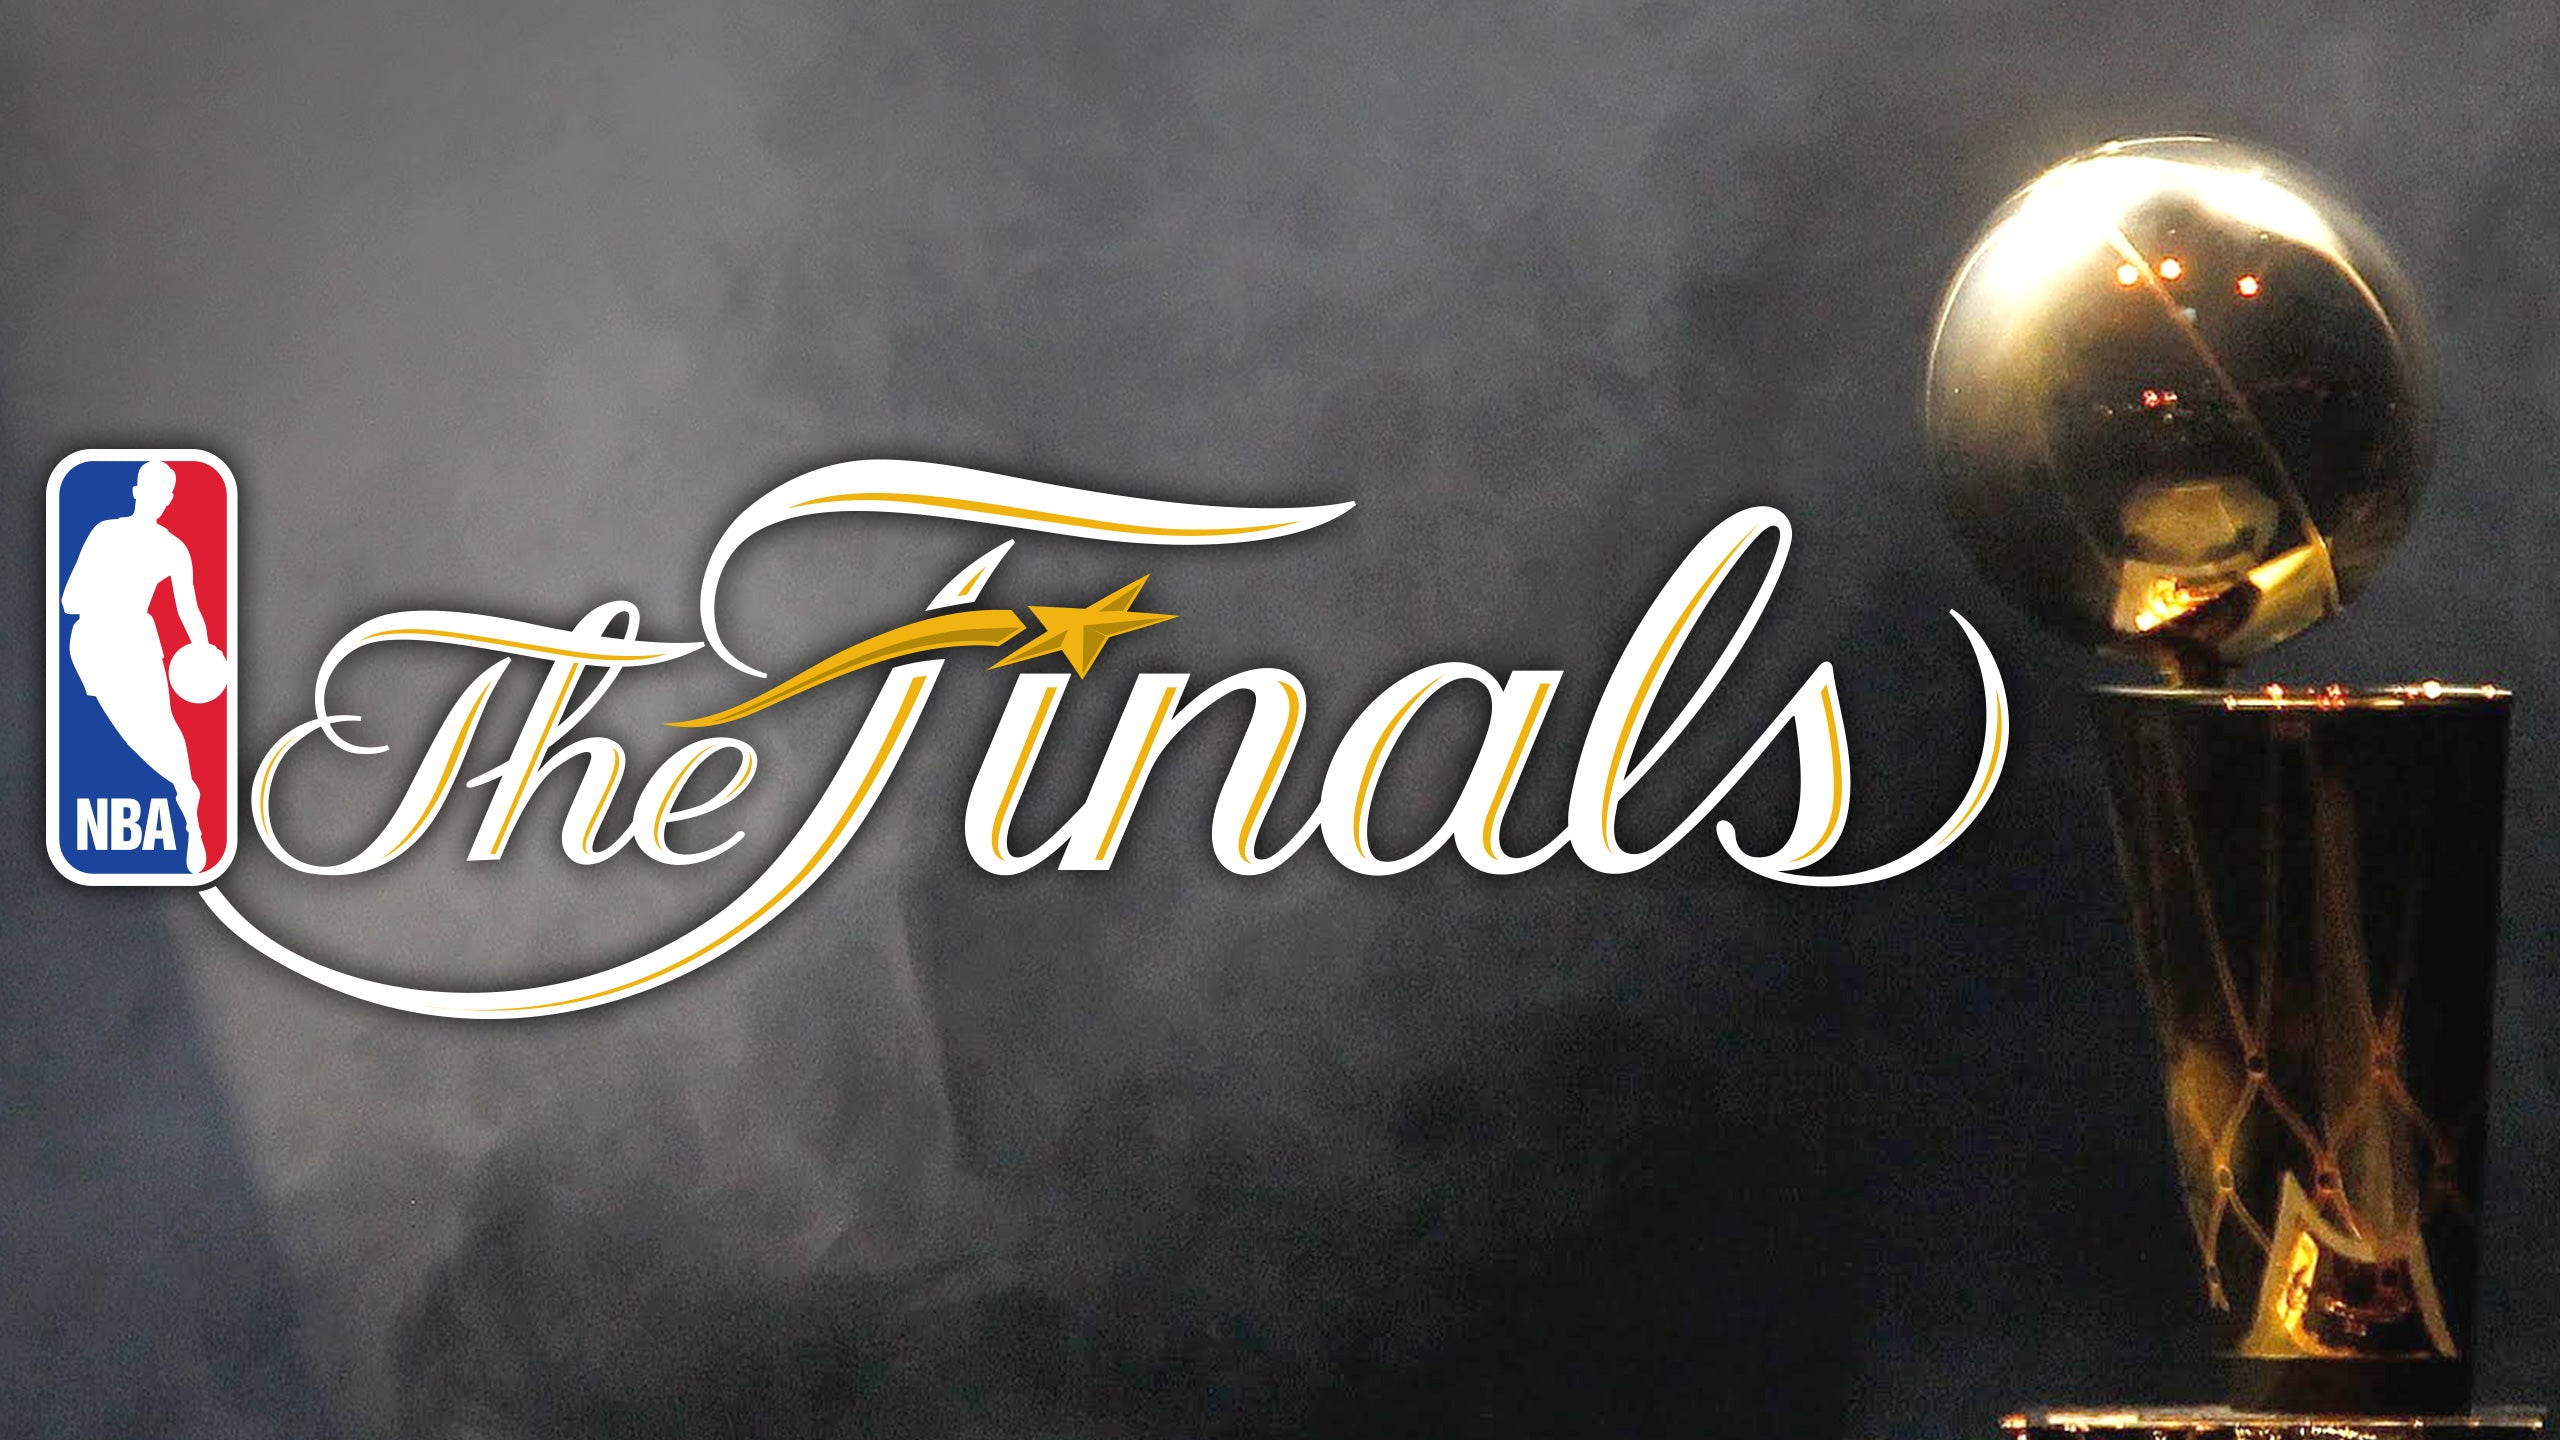 Stream the 2018 NBA Playoffs Finals